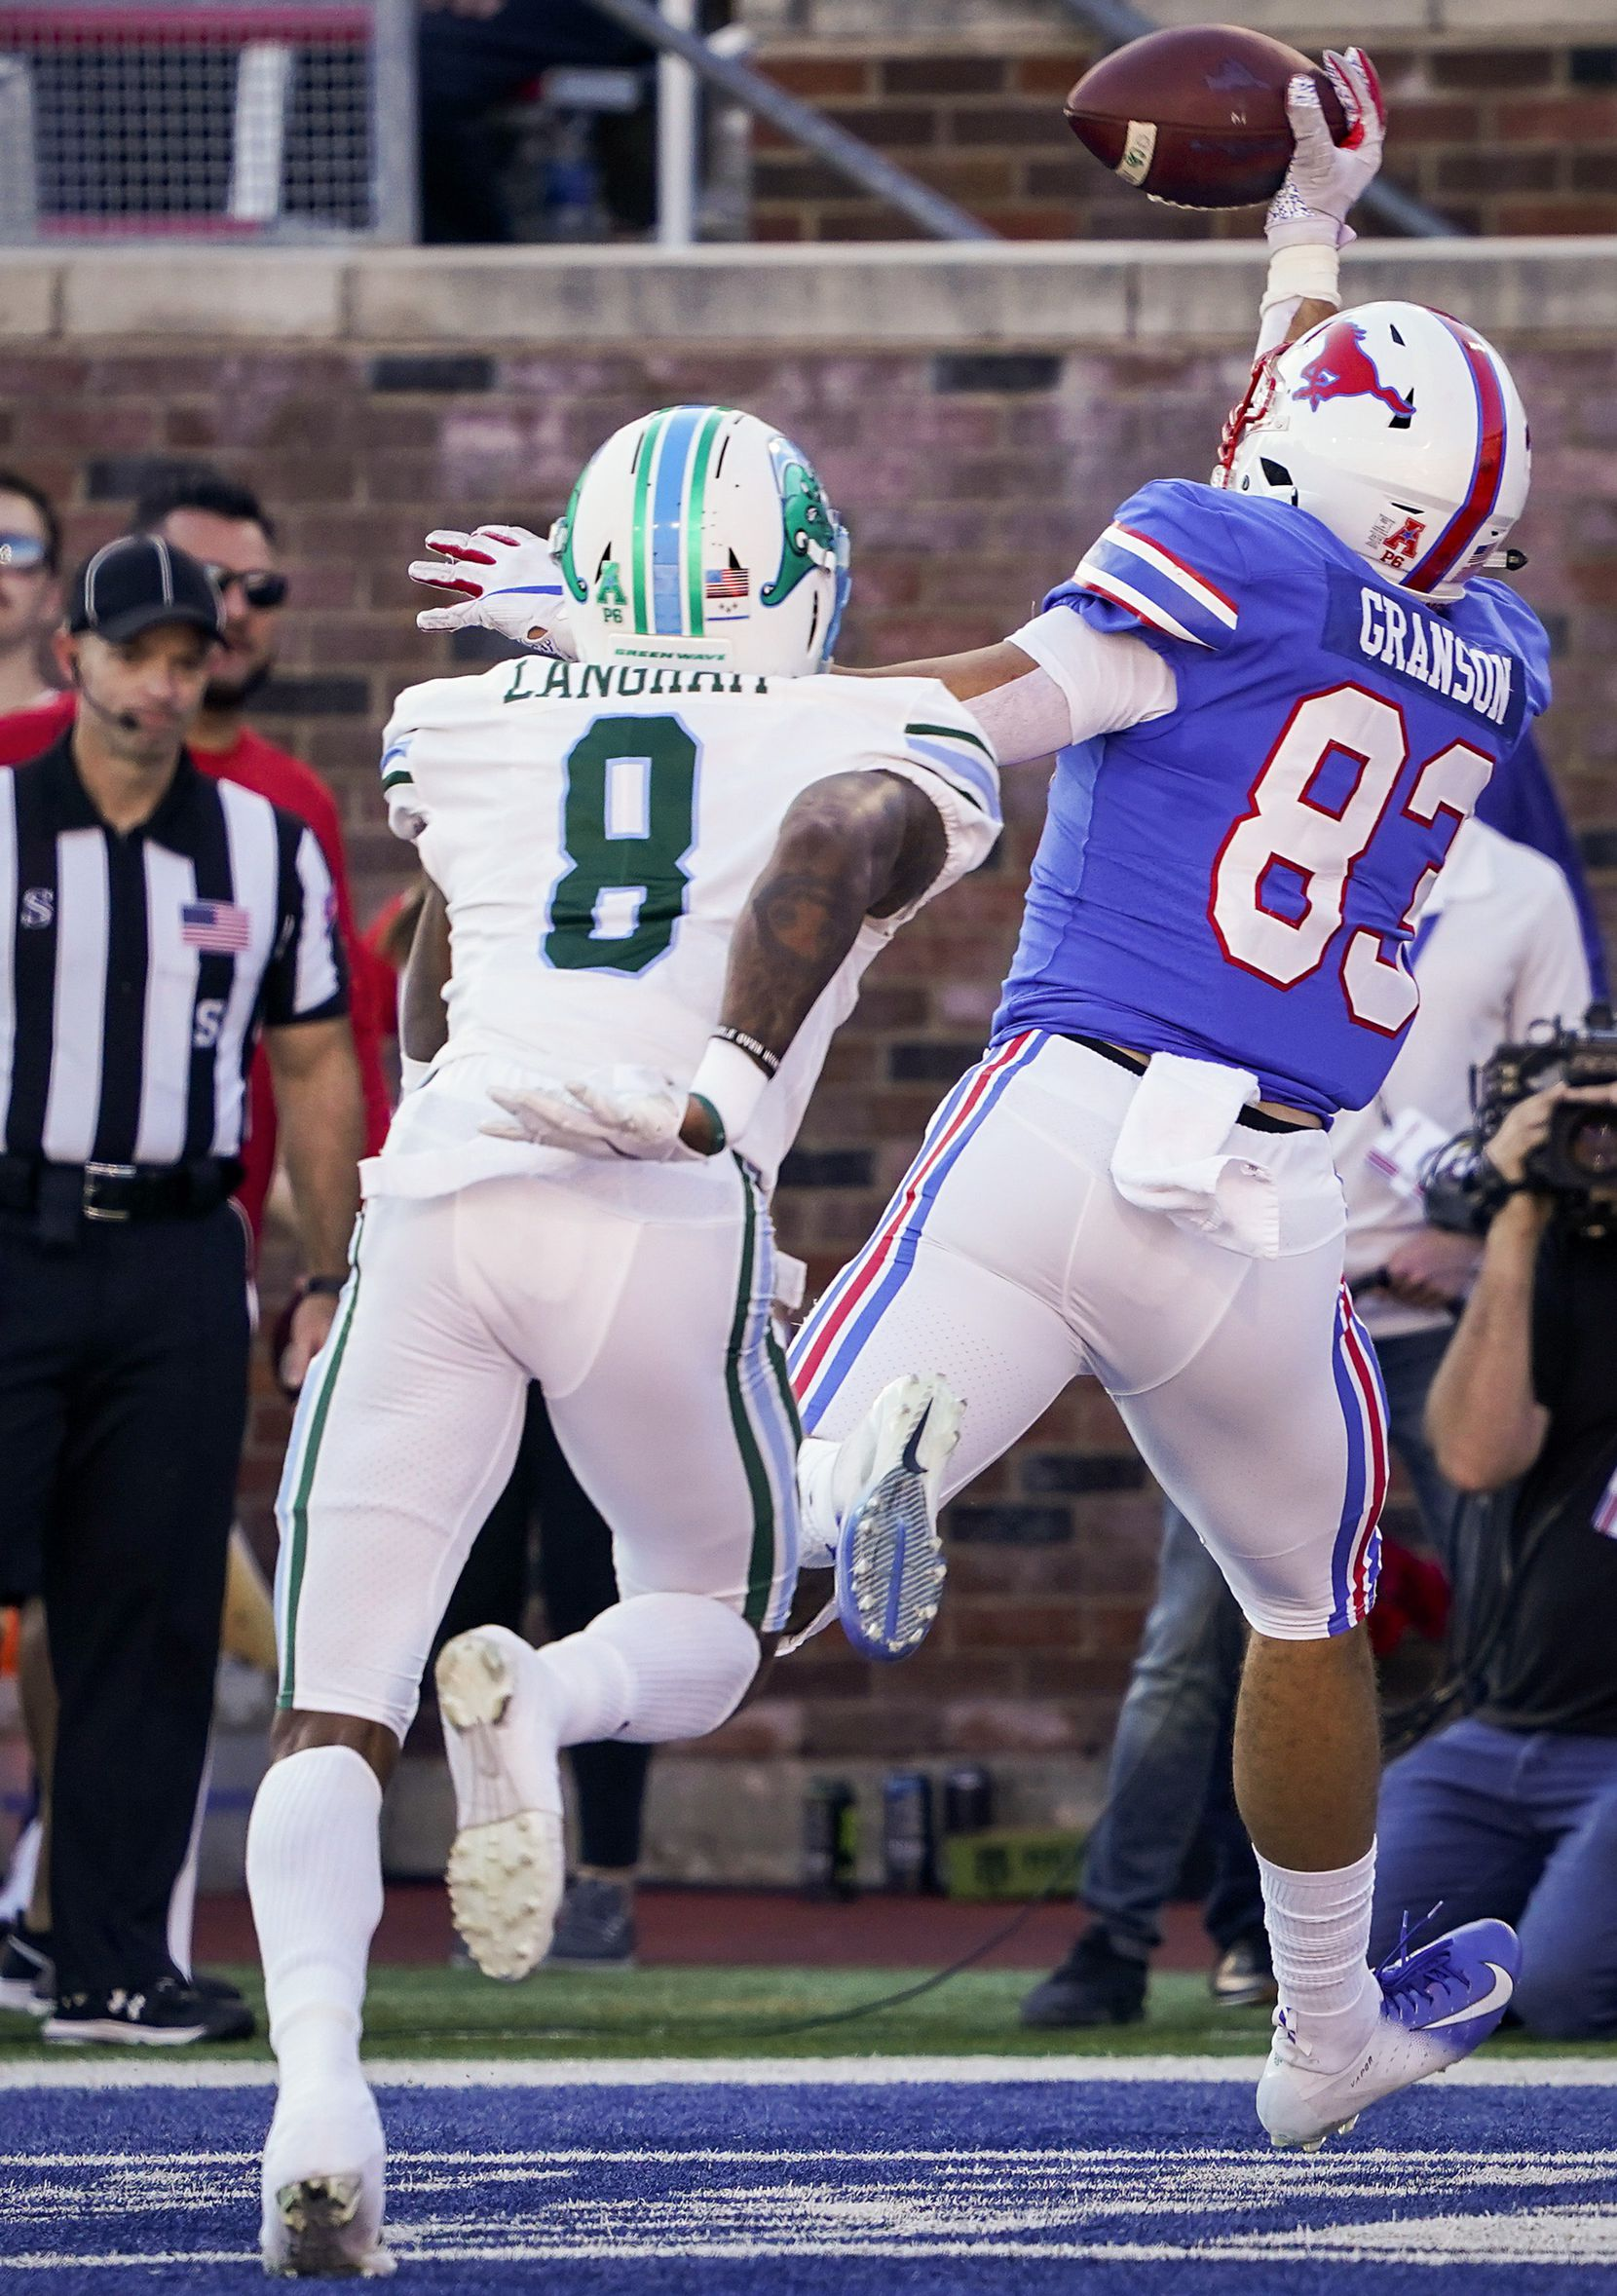 SMU tight end Kylen Granson (83) makes catch on a 8-yard touchdown pass as Tulane quarterback Josh Coltrin (8) defends during the first half of an NCAA football game at Ford Stadium on Saturday, Nov. 30, 2019, in Dallas.